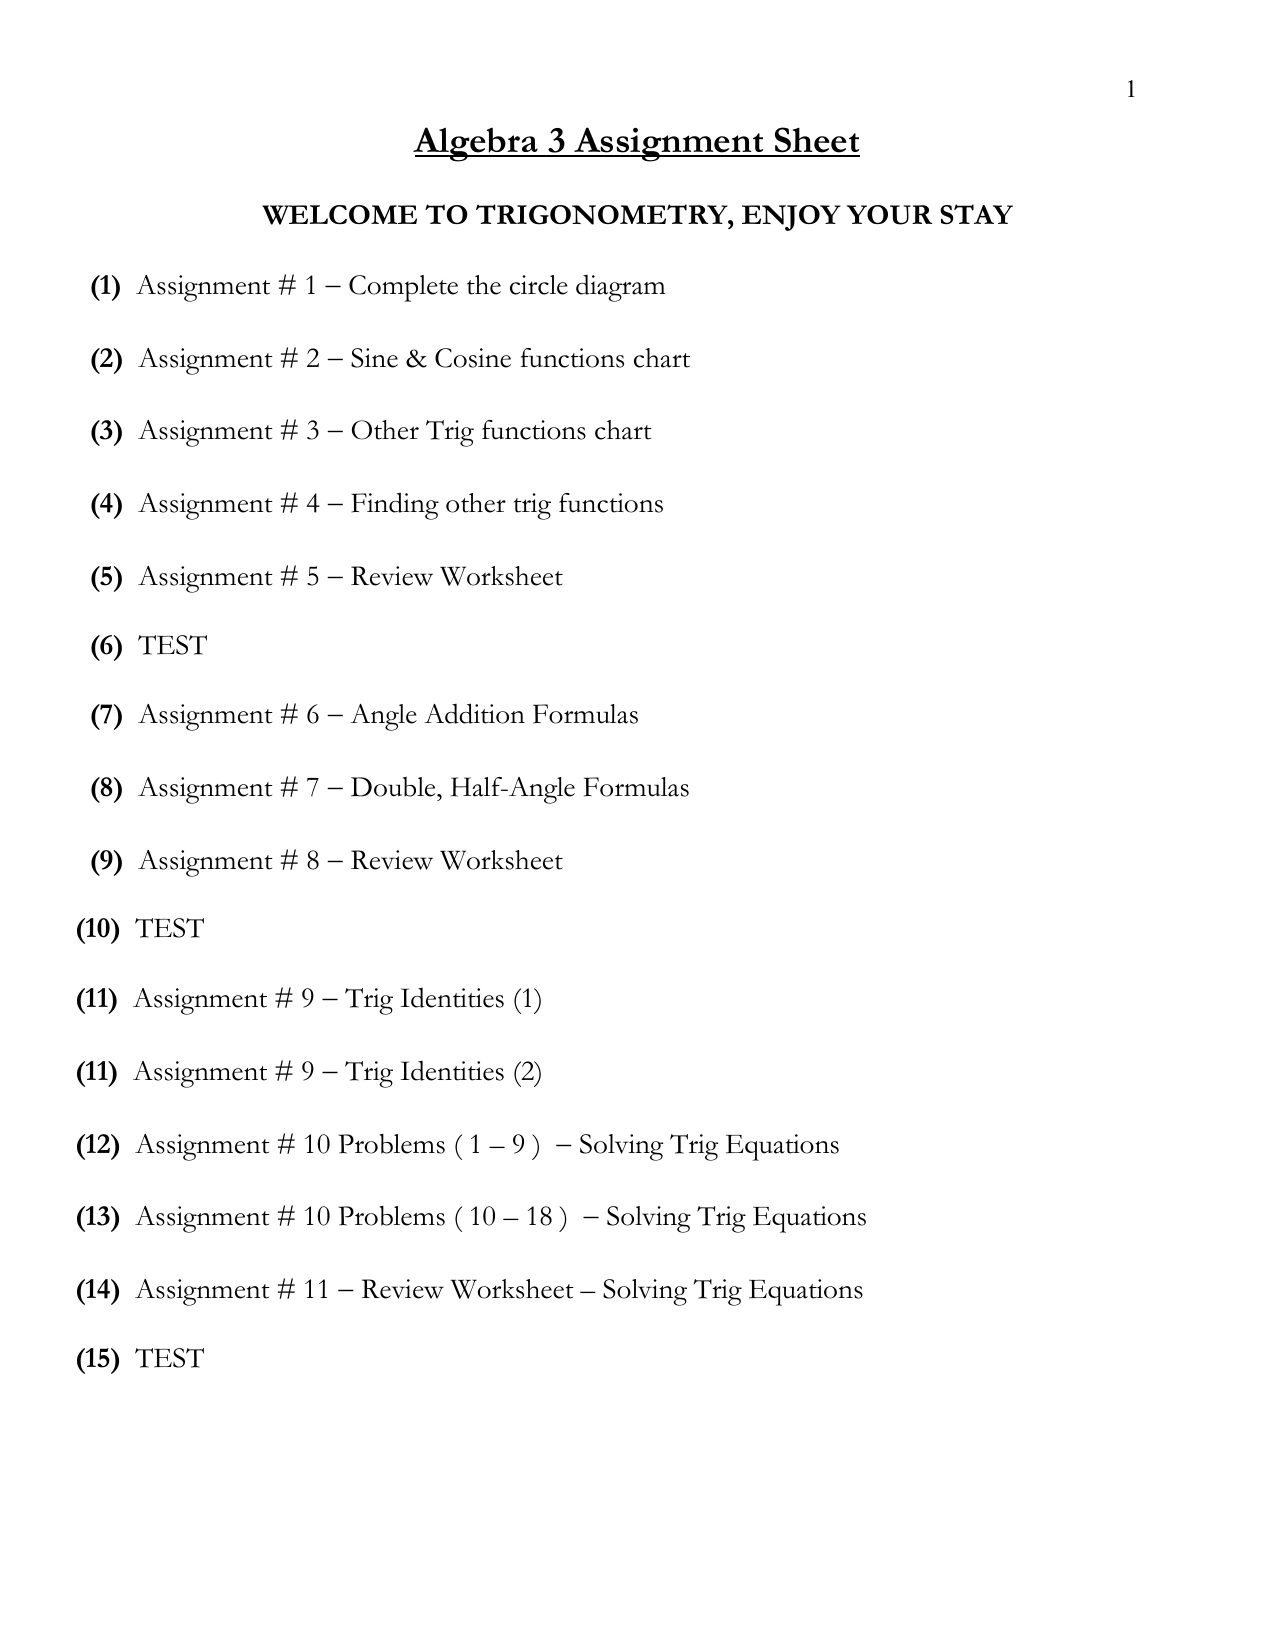 Solving First Degree Trigonometric Equations Worksheet